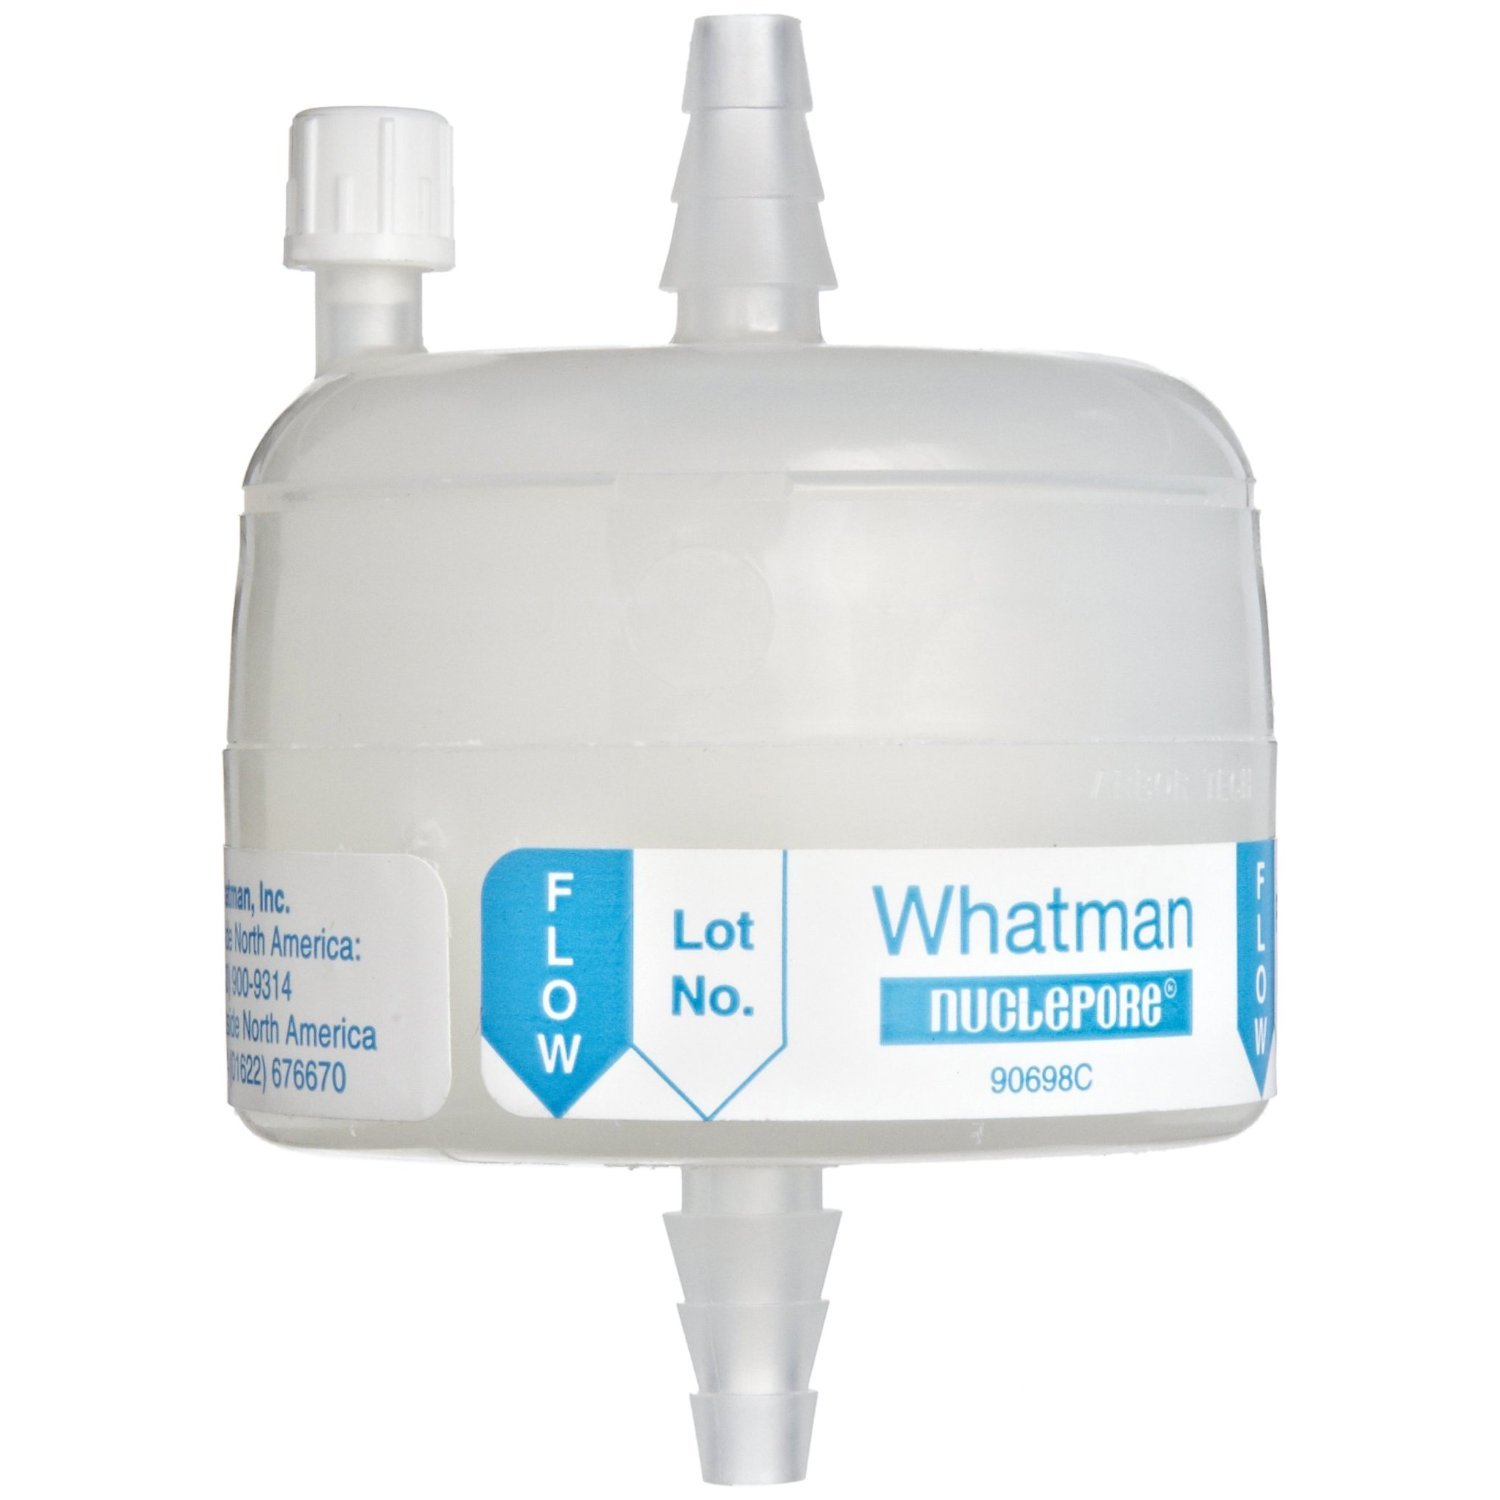 0.2 Micron 60 psi Maximum Pressure Whatman 6709-3602 Polycap AS 36 Nylon Membrane Capsule Filter with MNPT Inlet and SB Outlet